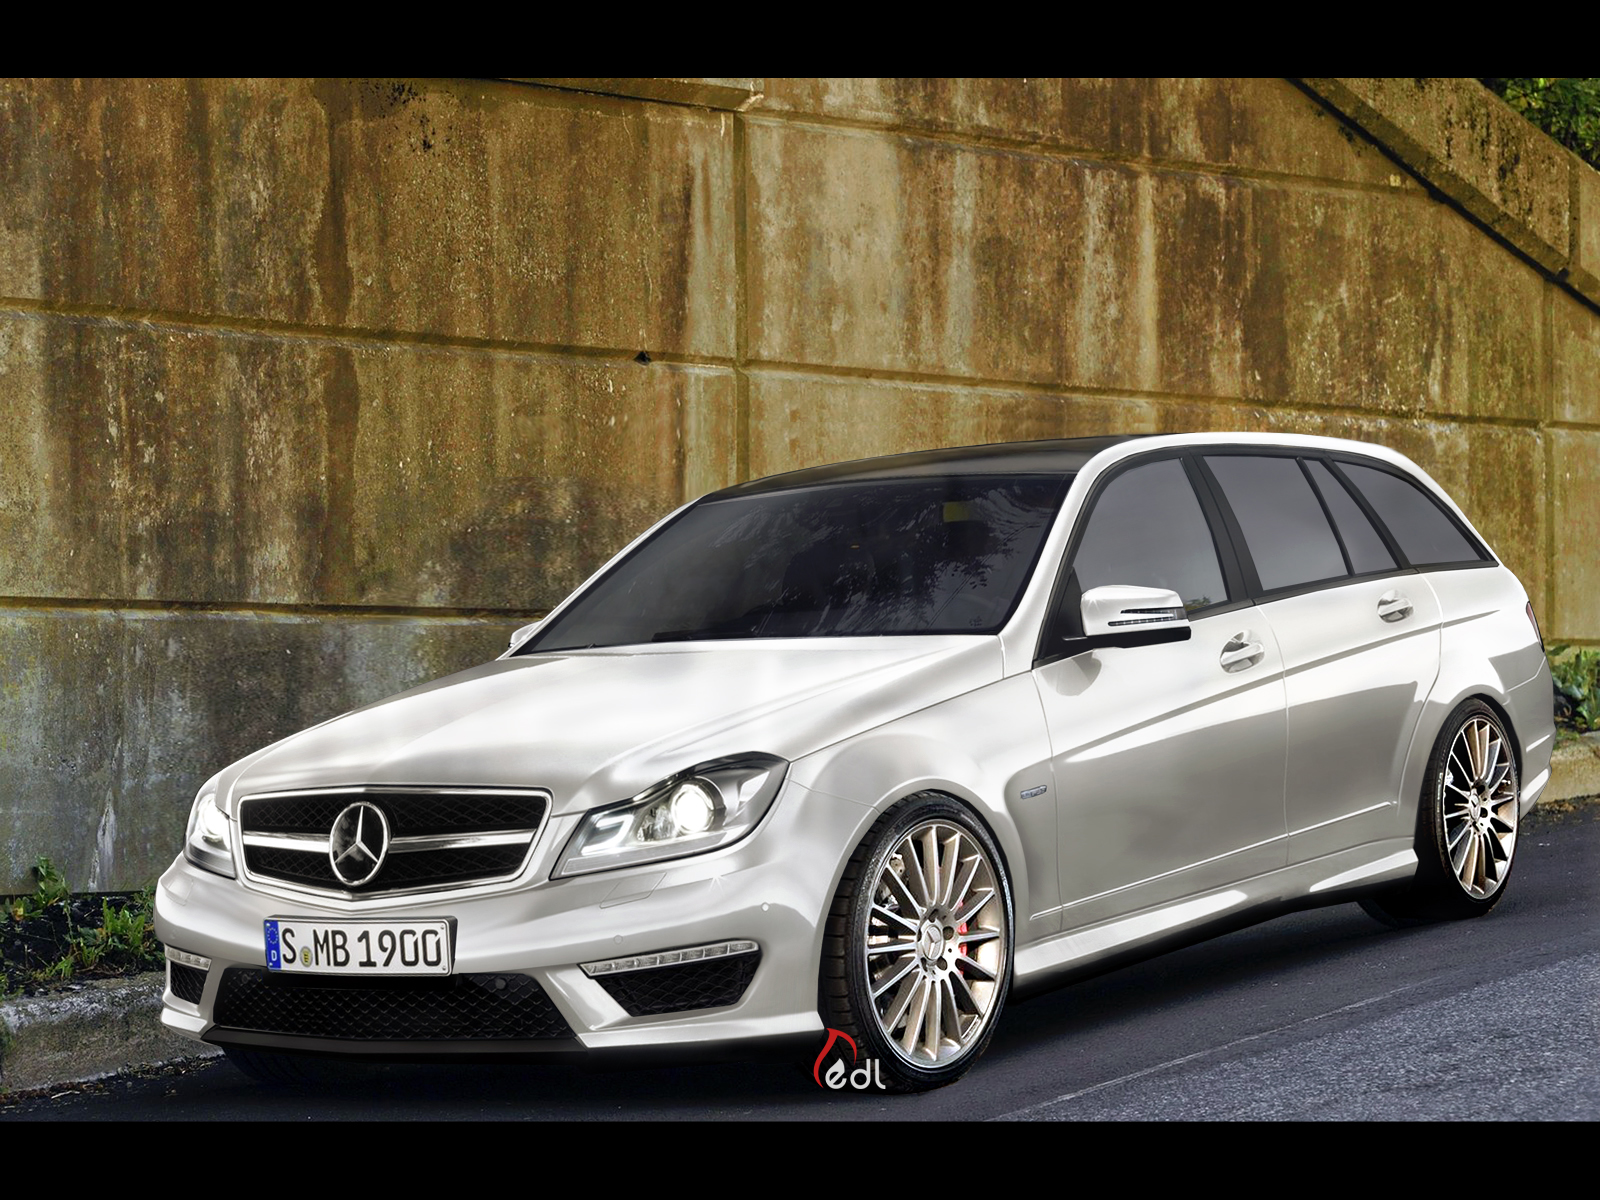 Mercedes benz c class 2012 amg by edldesign on deviantart for 2012 c class mercedes benz